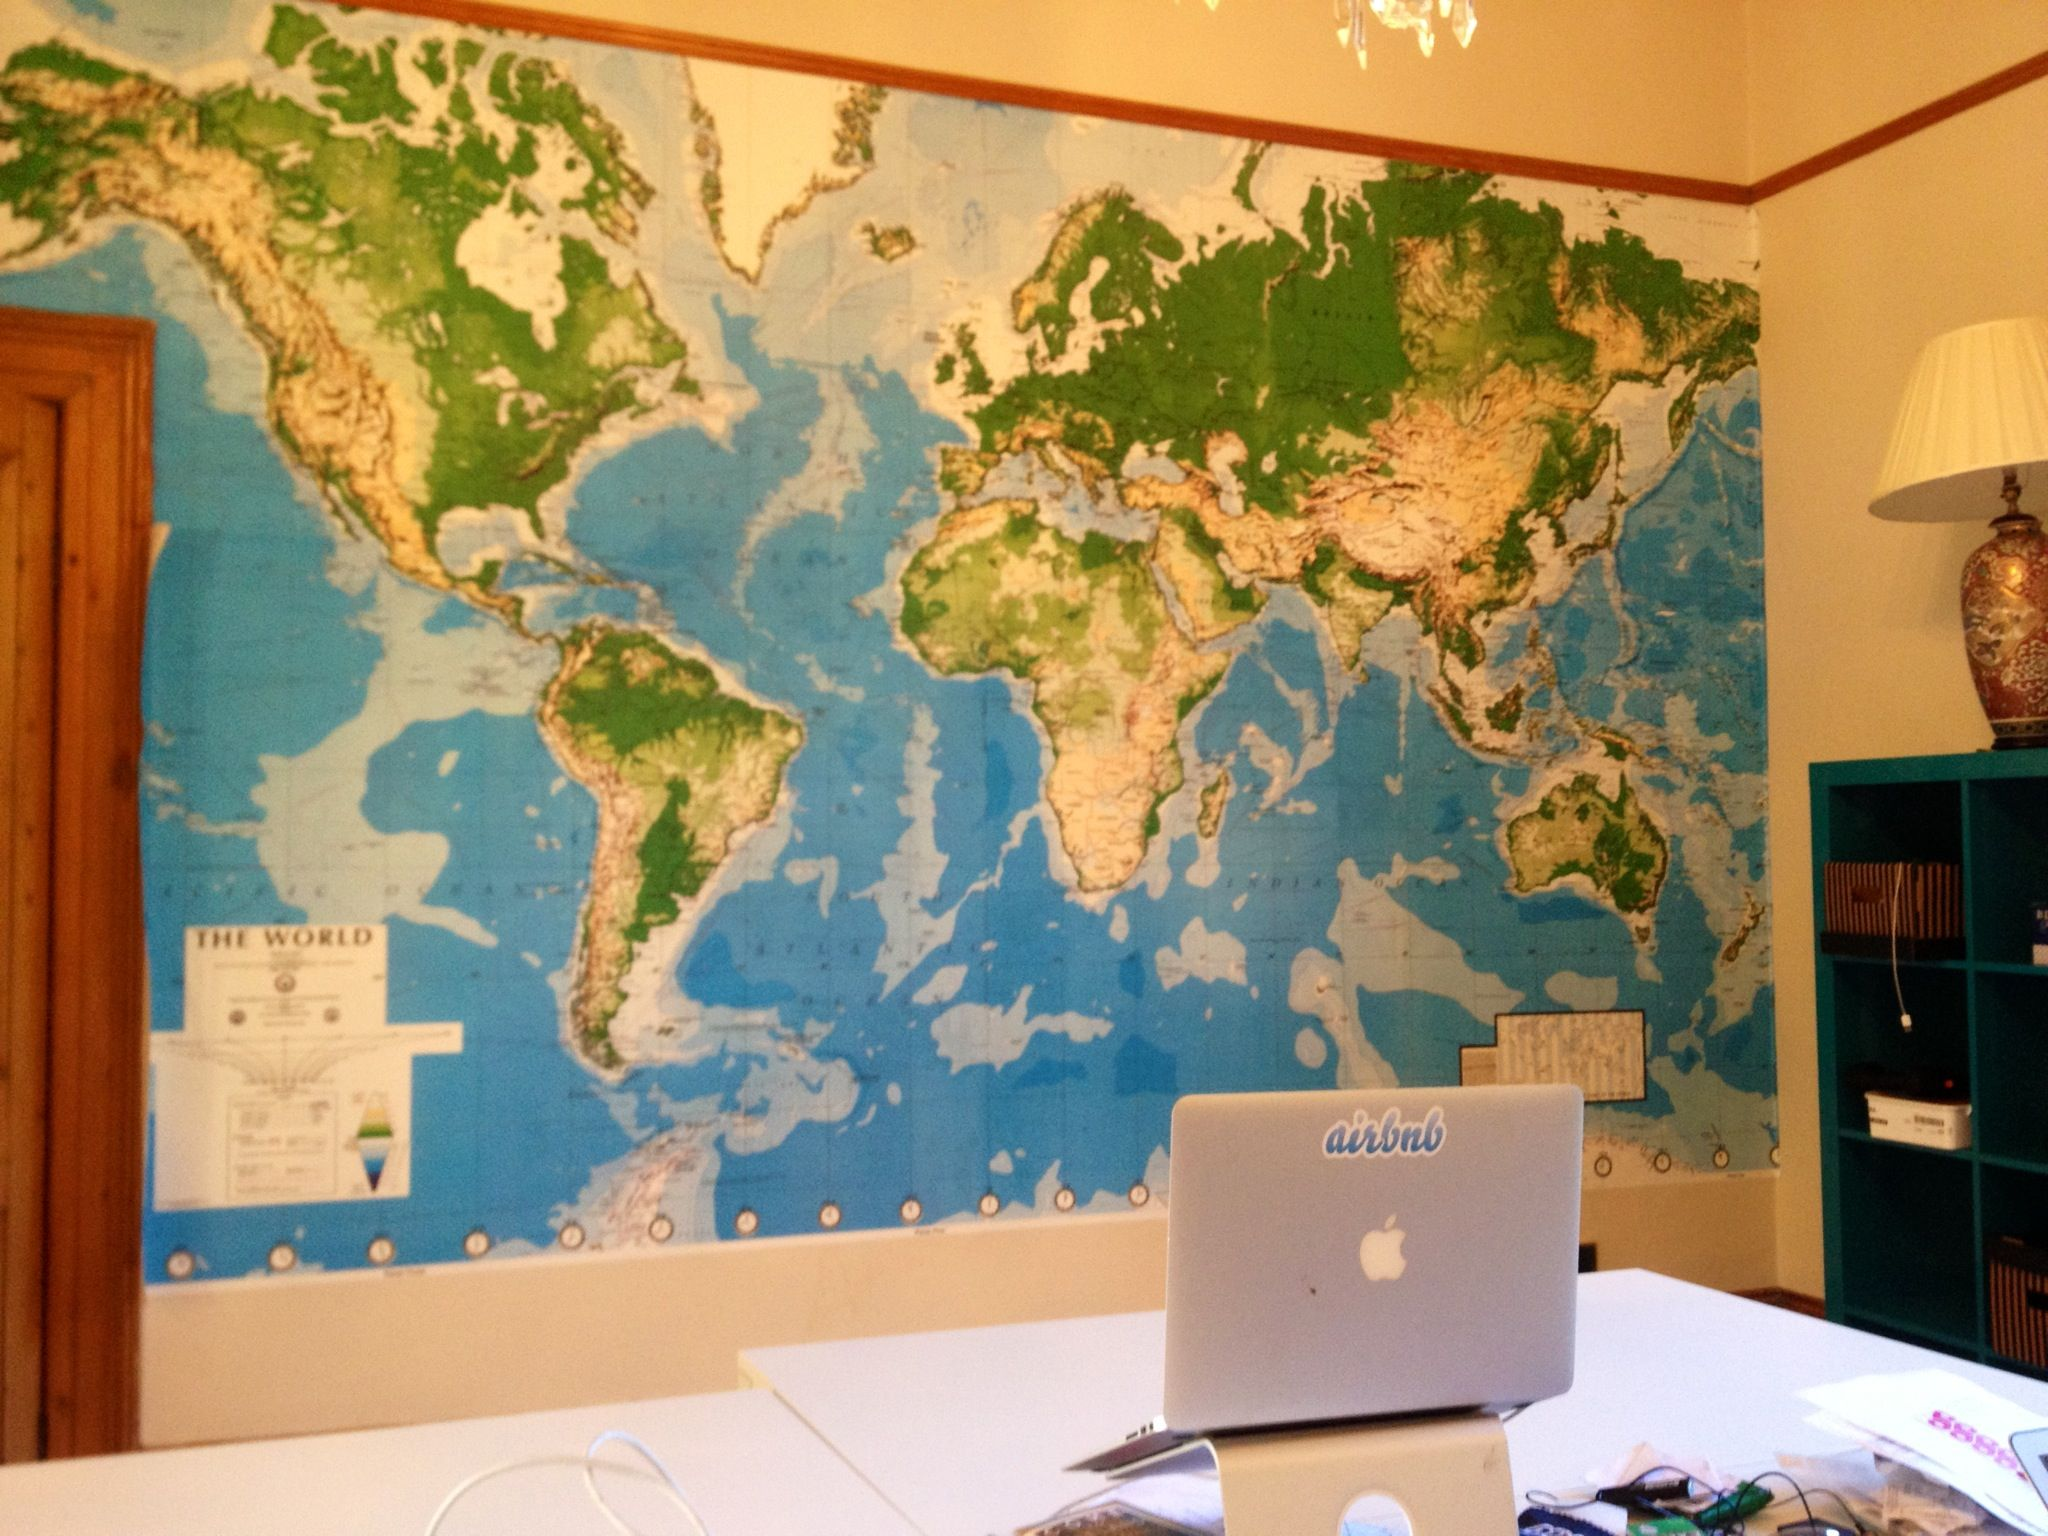 Wwwvinylimpressioncouk World Map Wall Mural For Air Bnb Dublin By